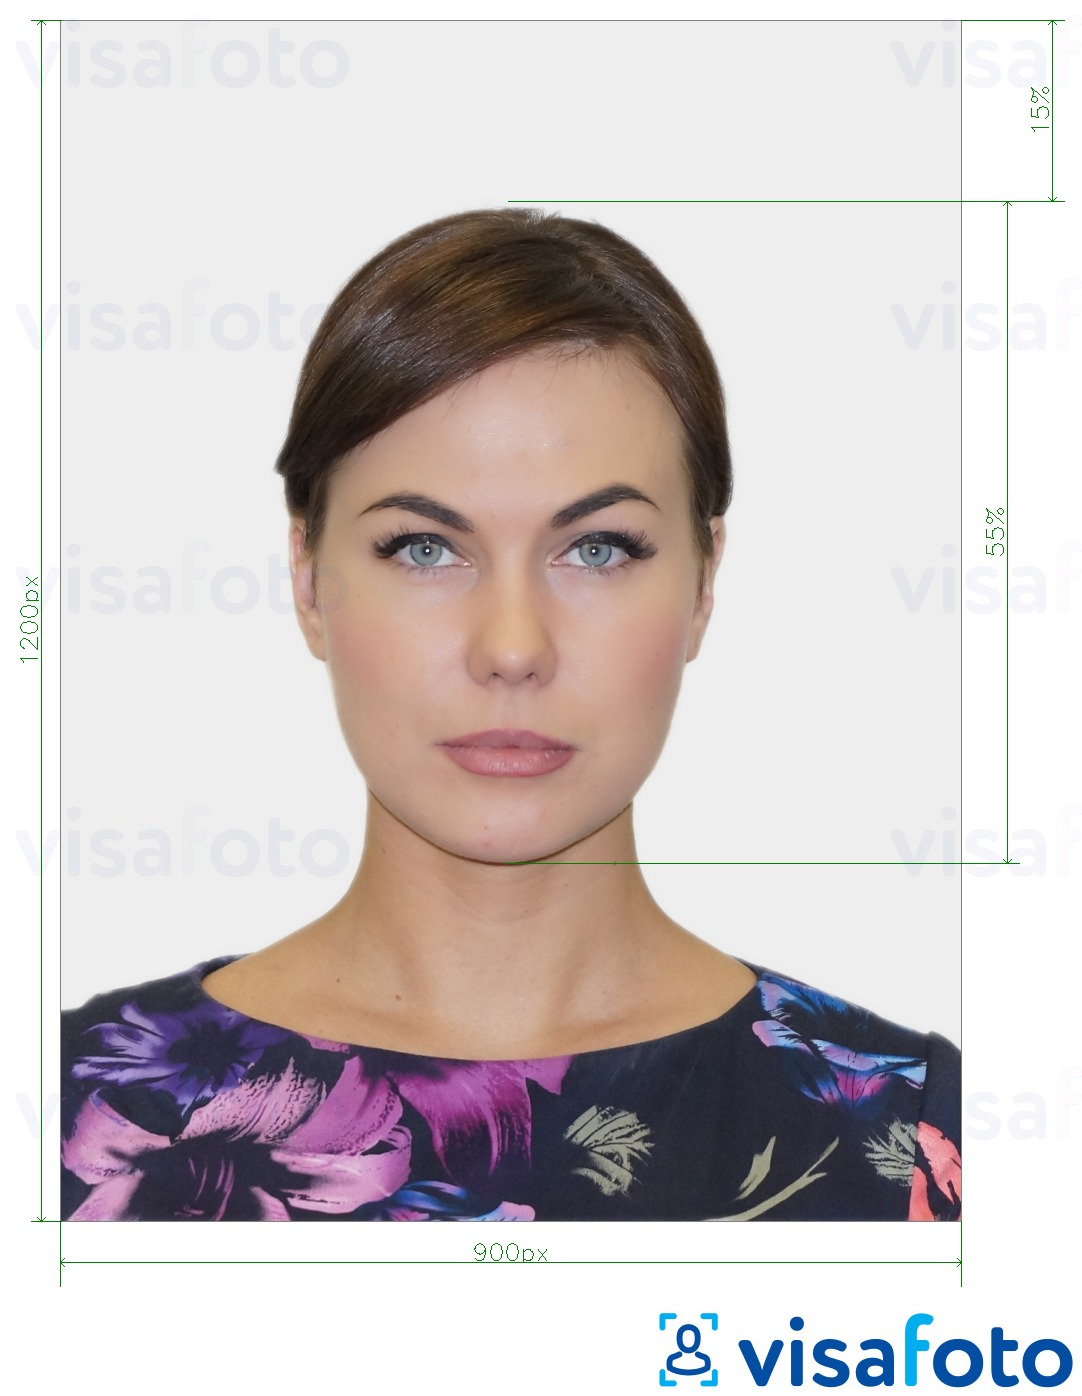 Example of photo for UK Passport online with exact size specification